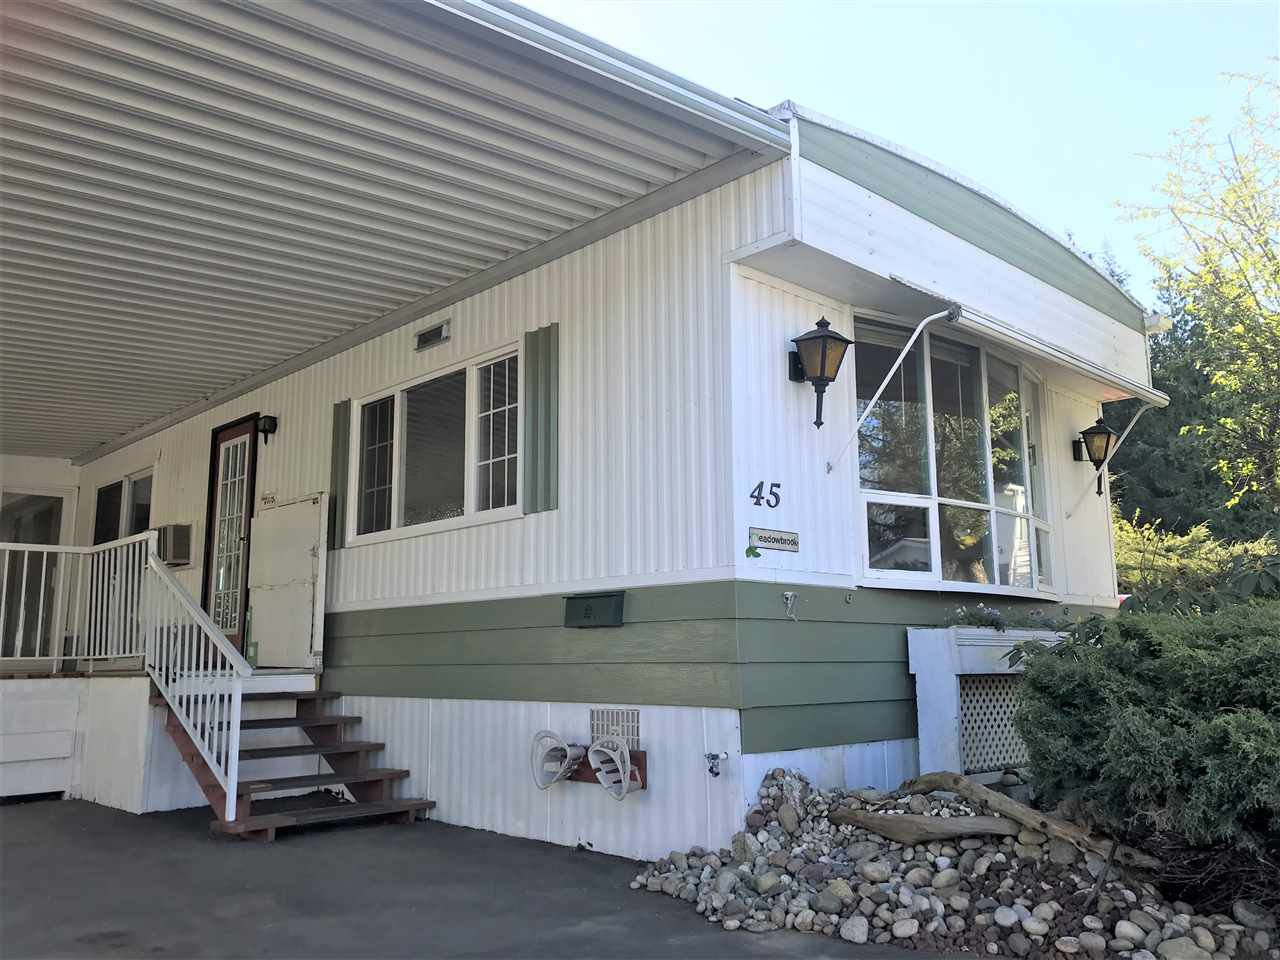 """Main Photo: 45 2270 196TH Street in Langley: Brookswood Langley Manufactured Home for sale in """"Pine Ridge Park"""" : MLS®# R2447689"""